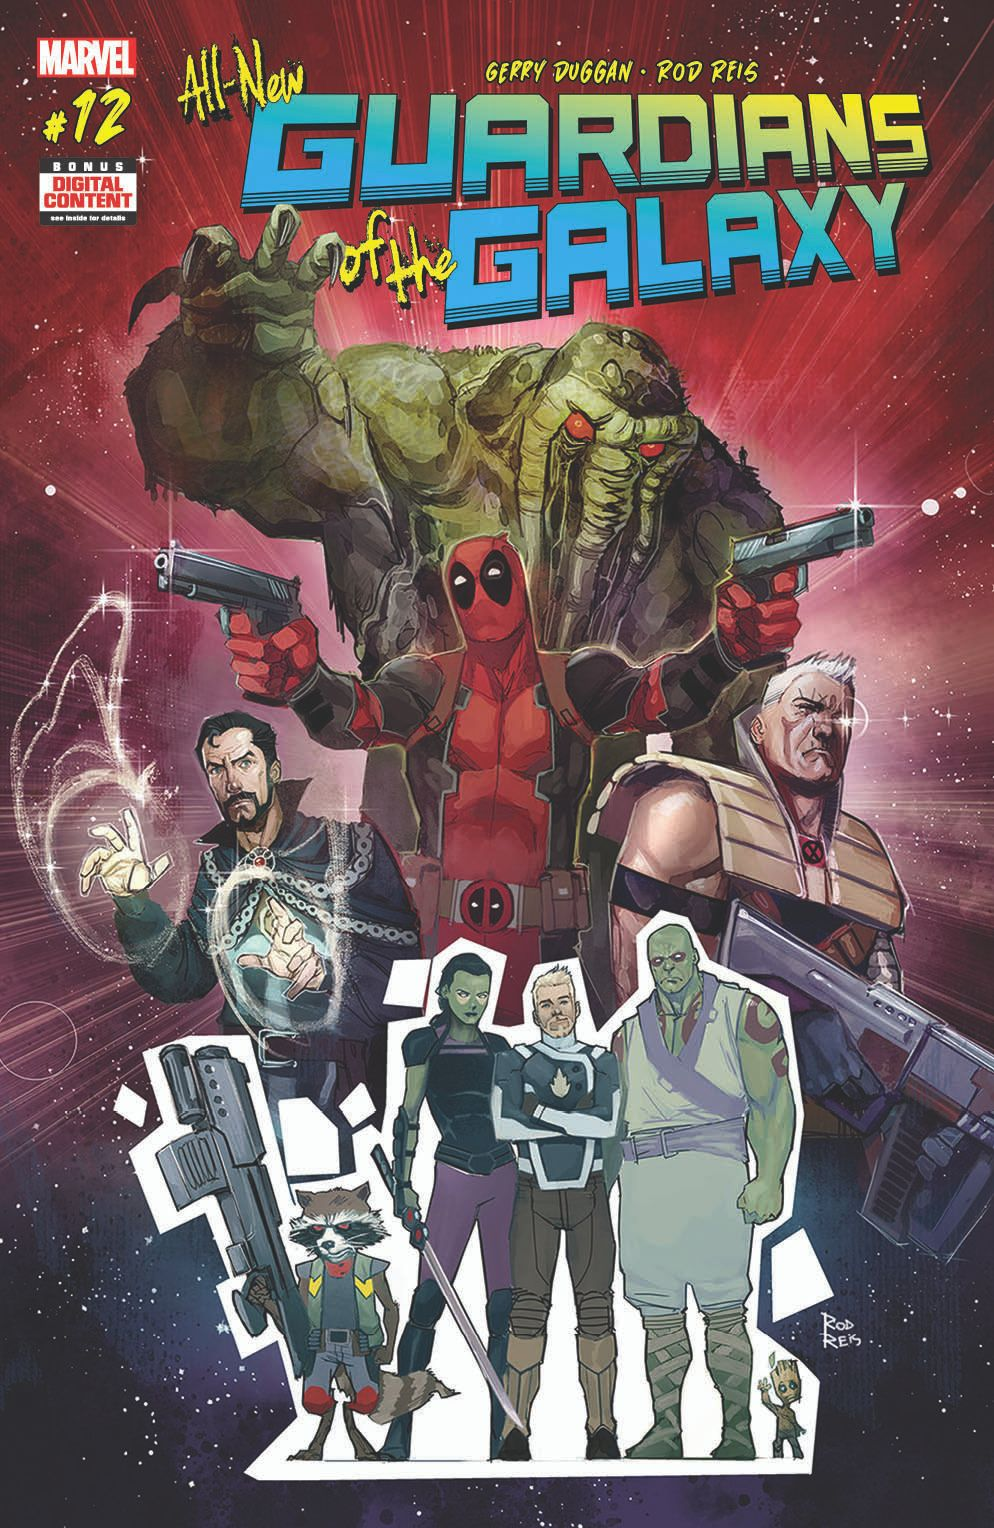 All-New-Guardians-of-the-Galaxy.jpg?cs=t